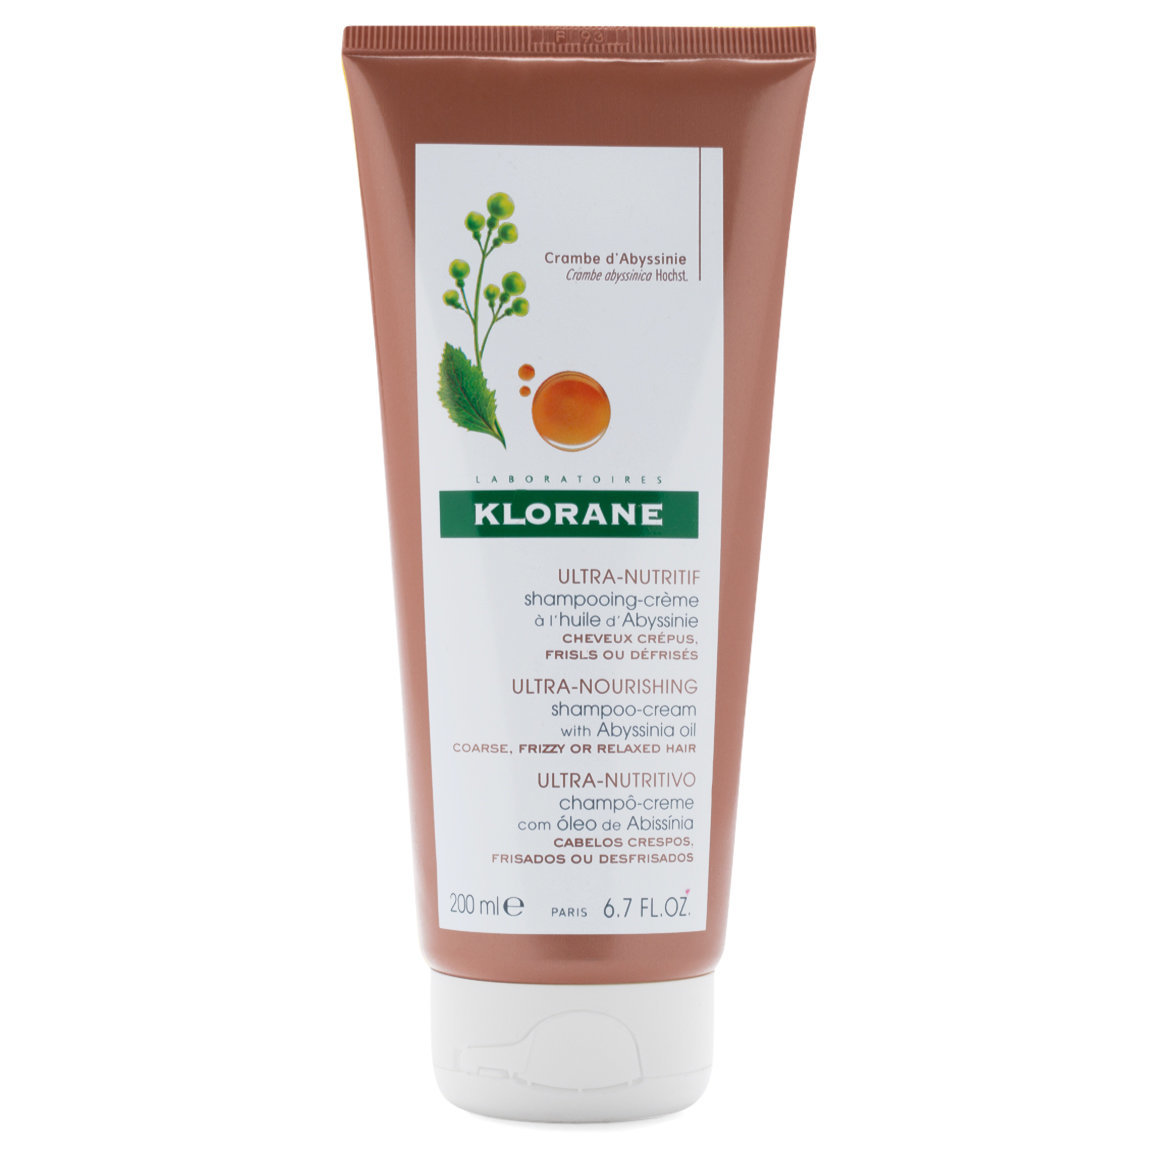 Klorane Shampoo-Cream with Abyssinia Oil alternative view 1 - product swatch.